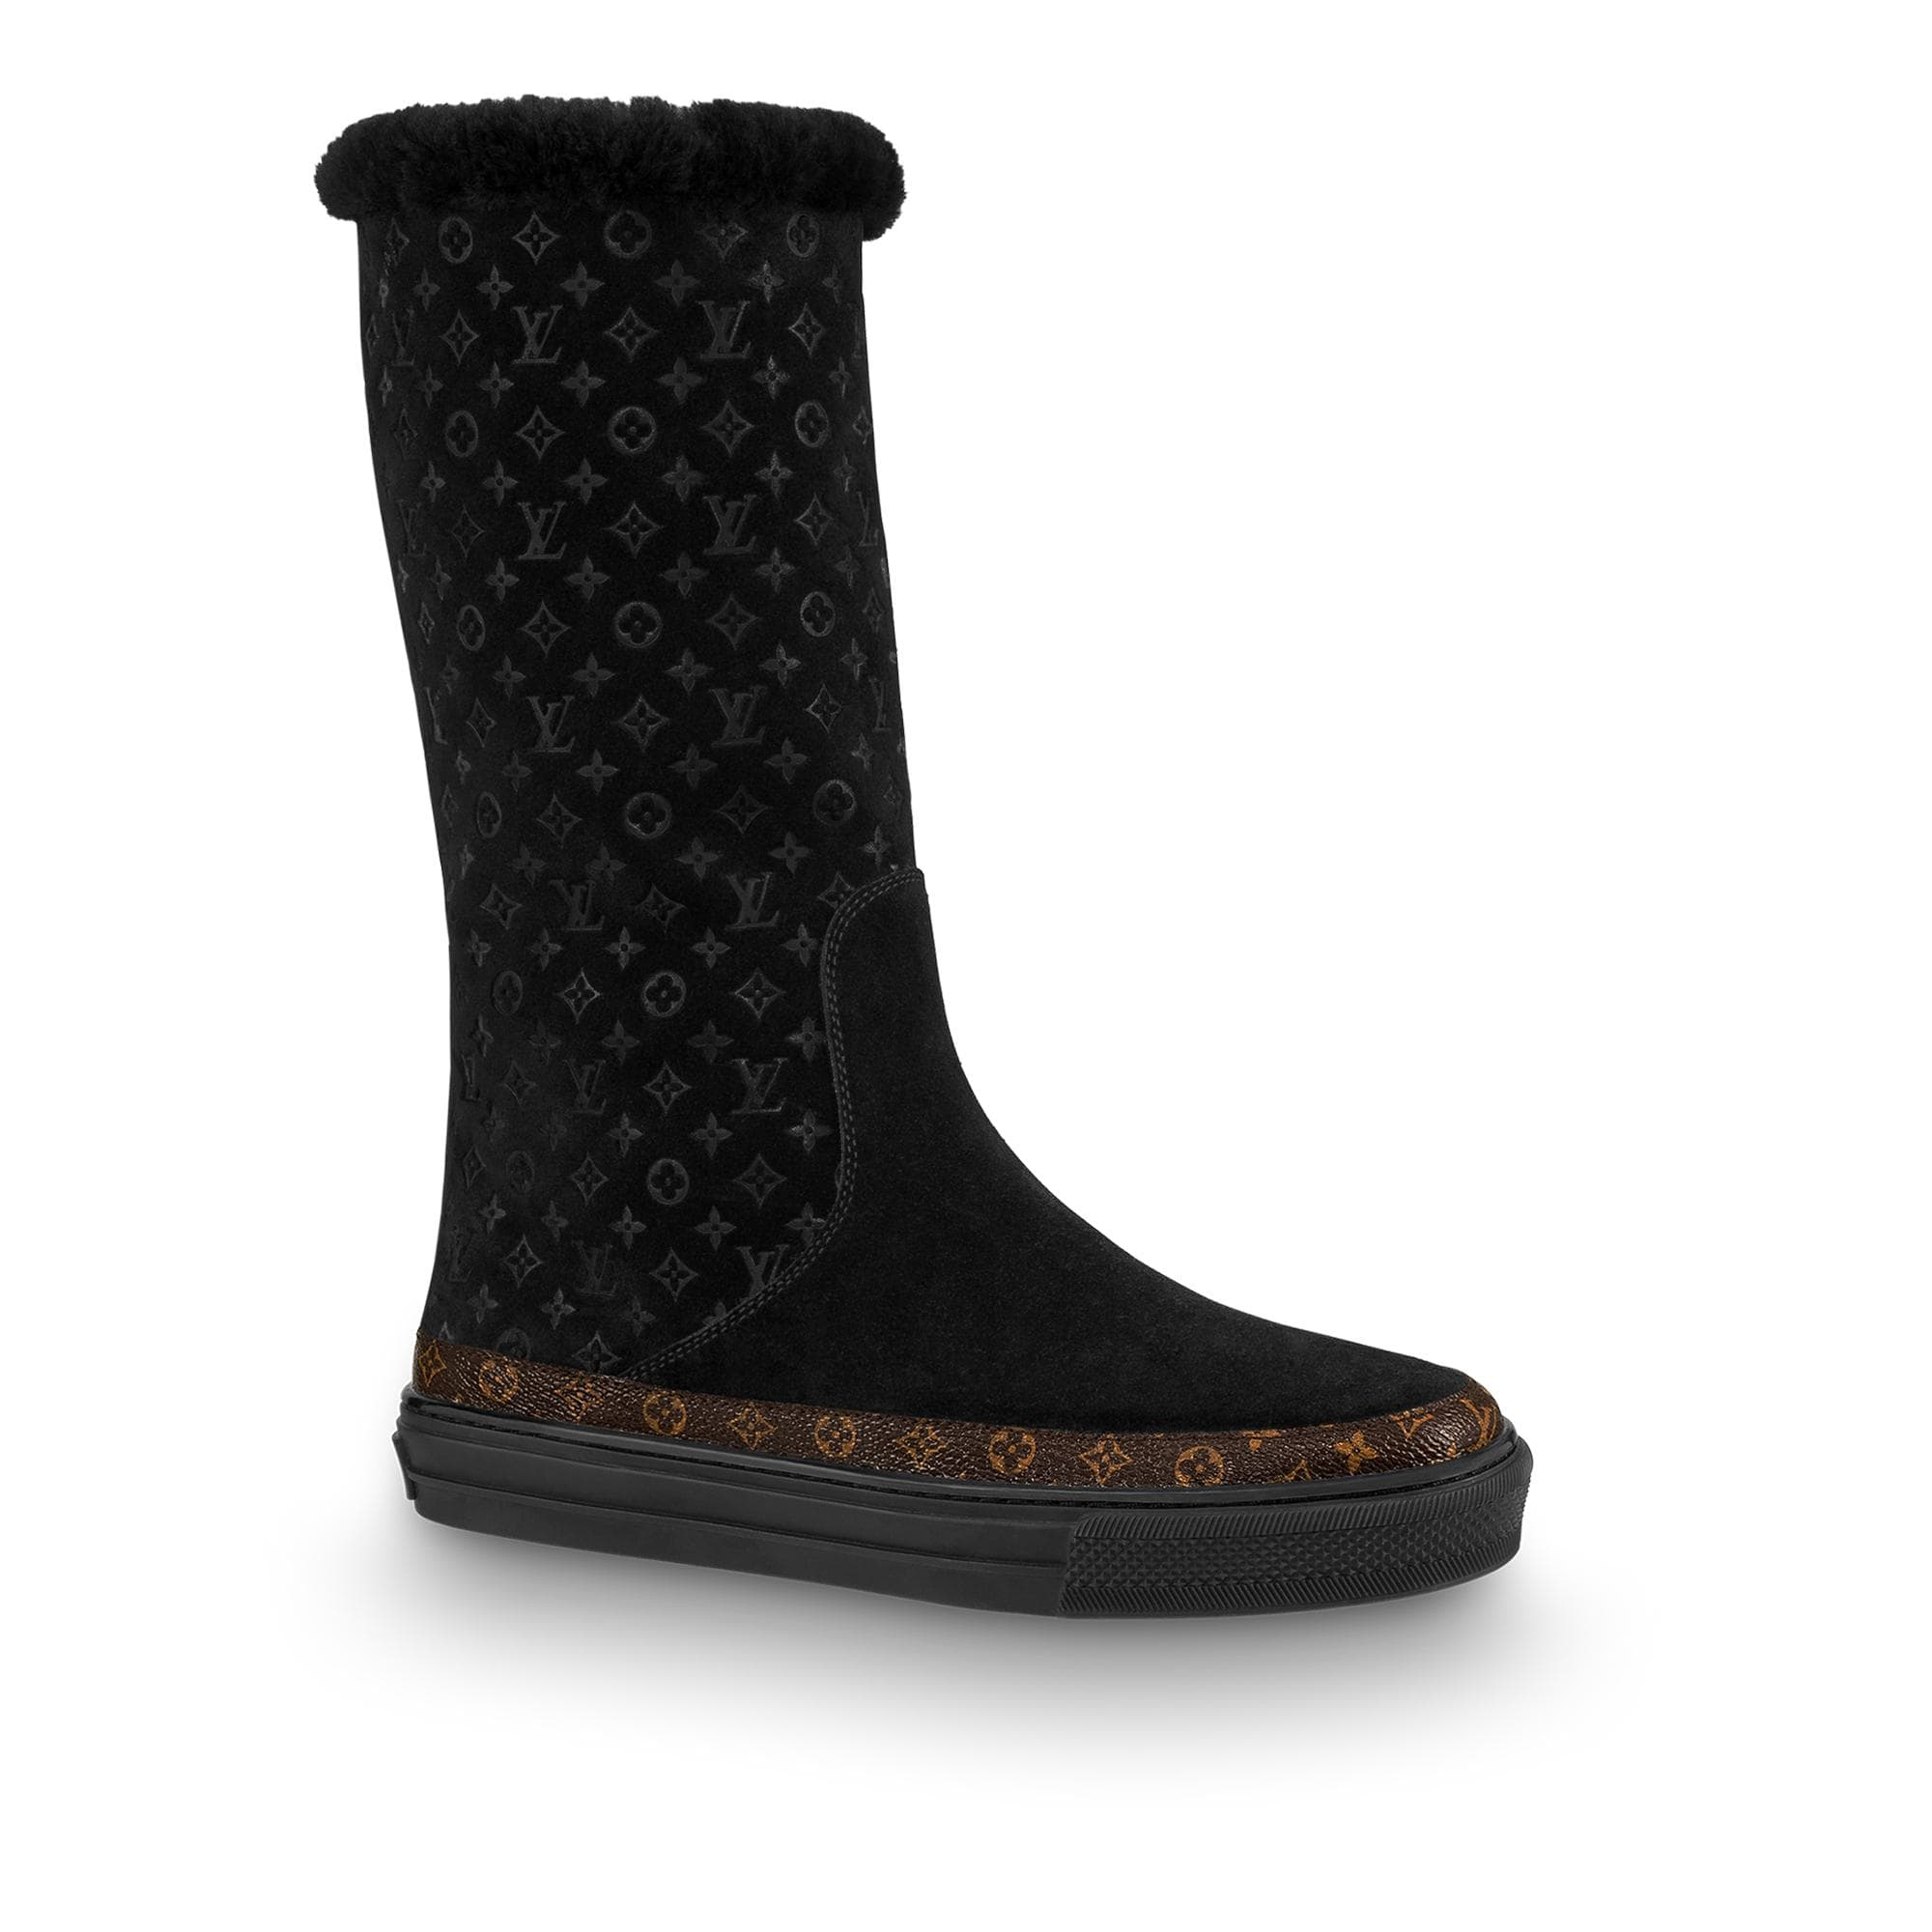 유럽직배송 루이비통 LOUIS VUITTON Snowball Flat Half Boot 1A4FF5